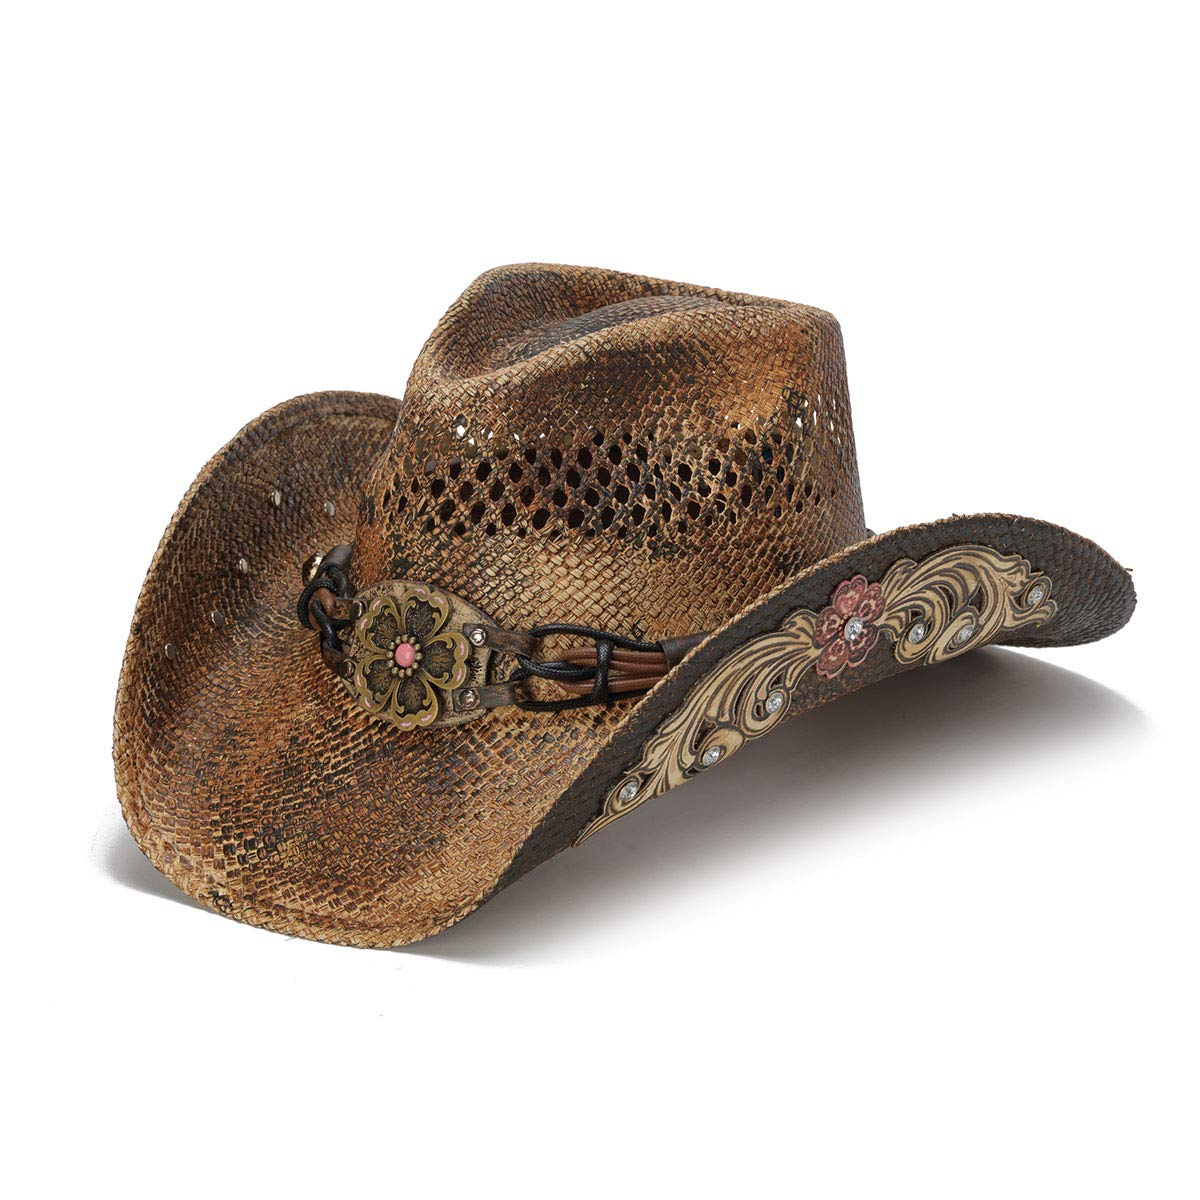 Stampede Hats Women's Glory Rider Flowers and Rhinestone Western Hat M Brown